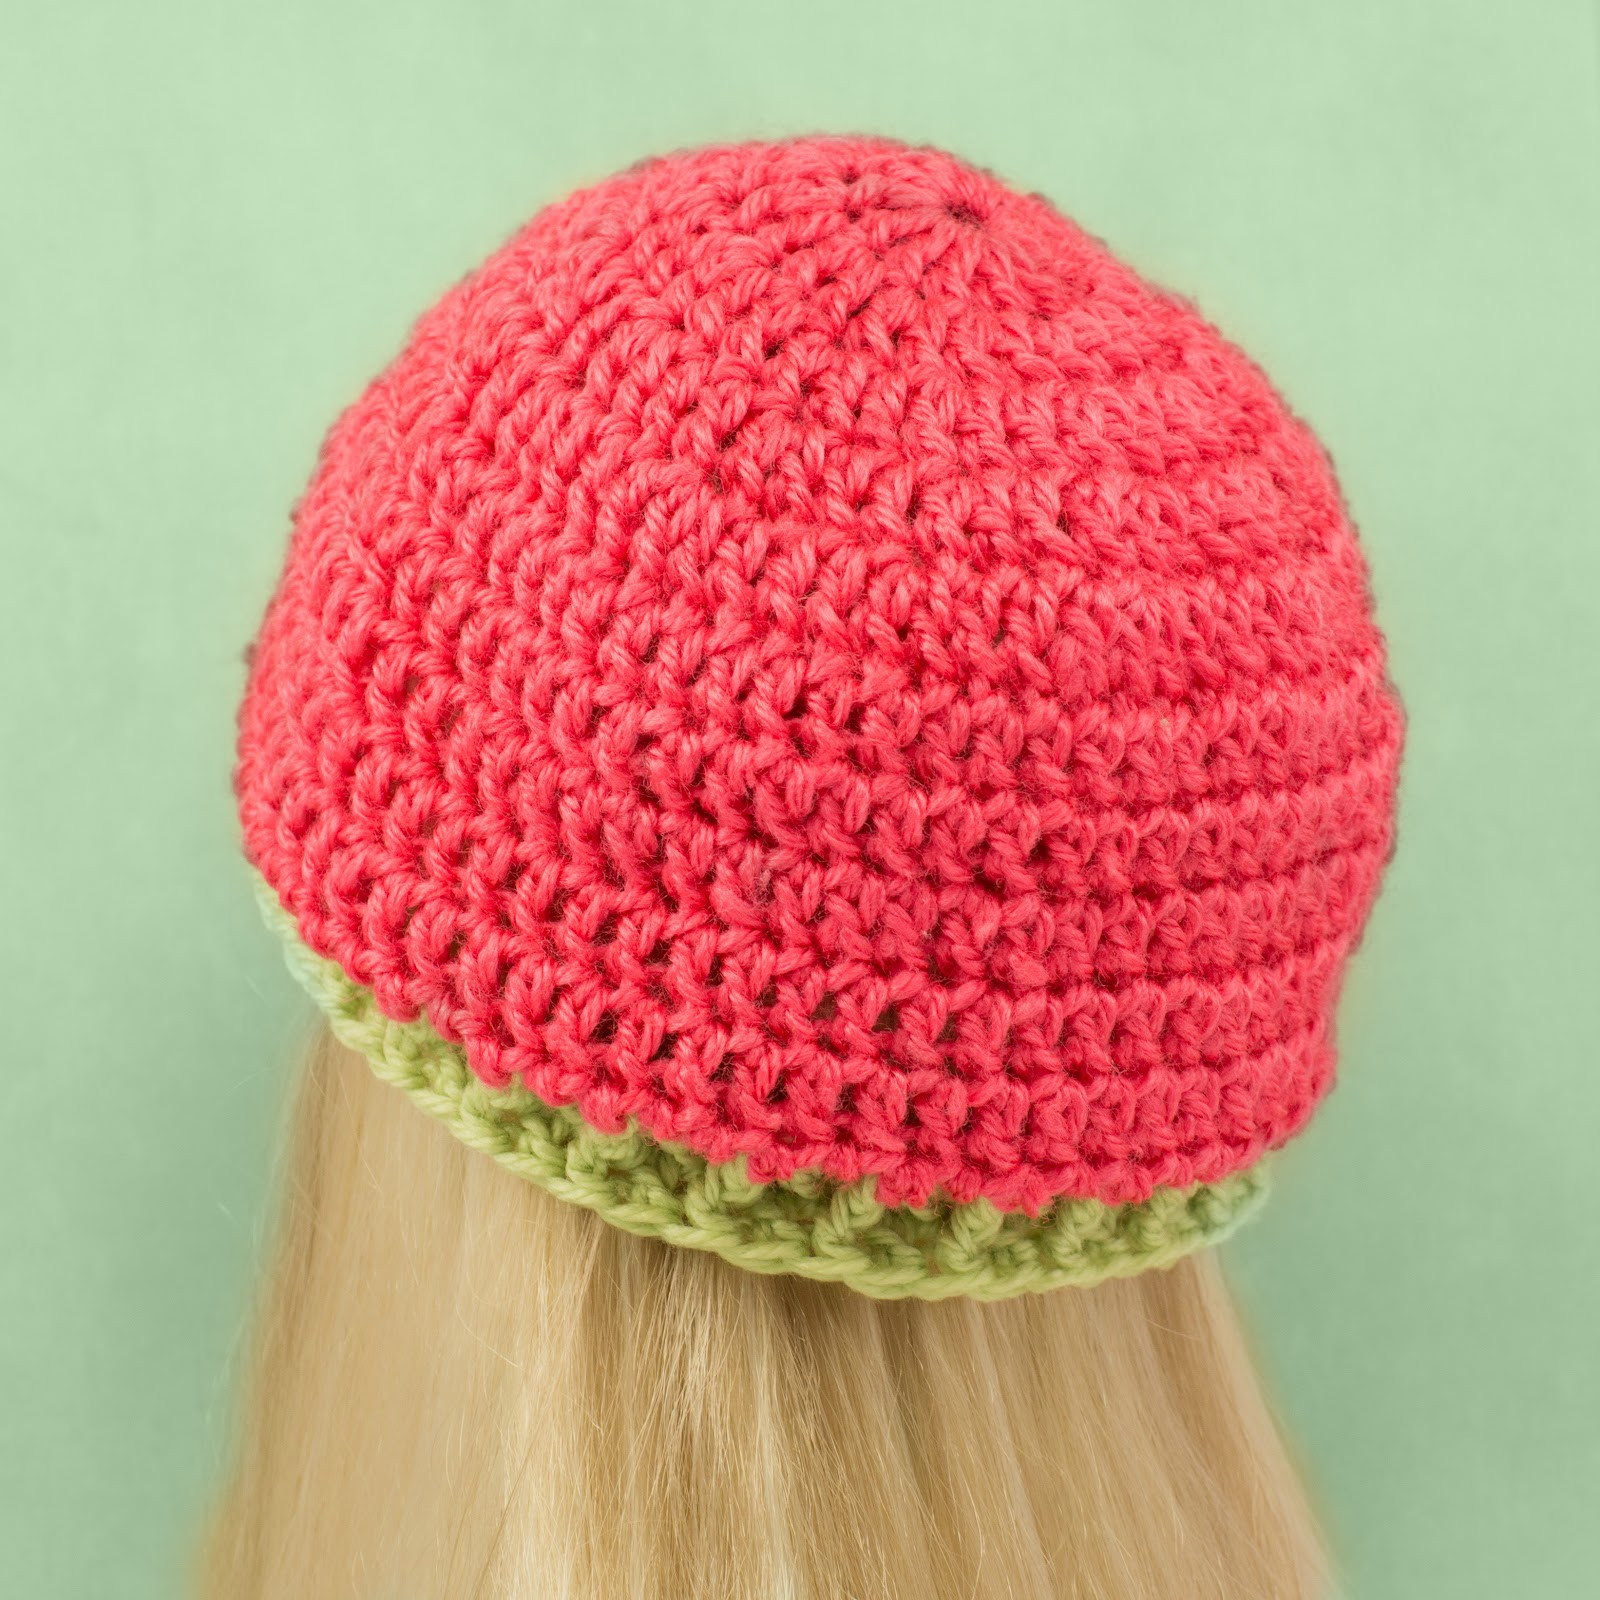 Elegant 6 12 Months Basic Beanie Pattern Interweave Beanie Pattern Of Perfect 47 Pics Beanie Pattern